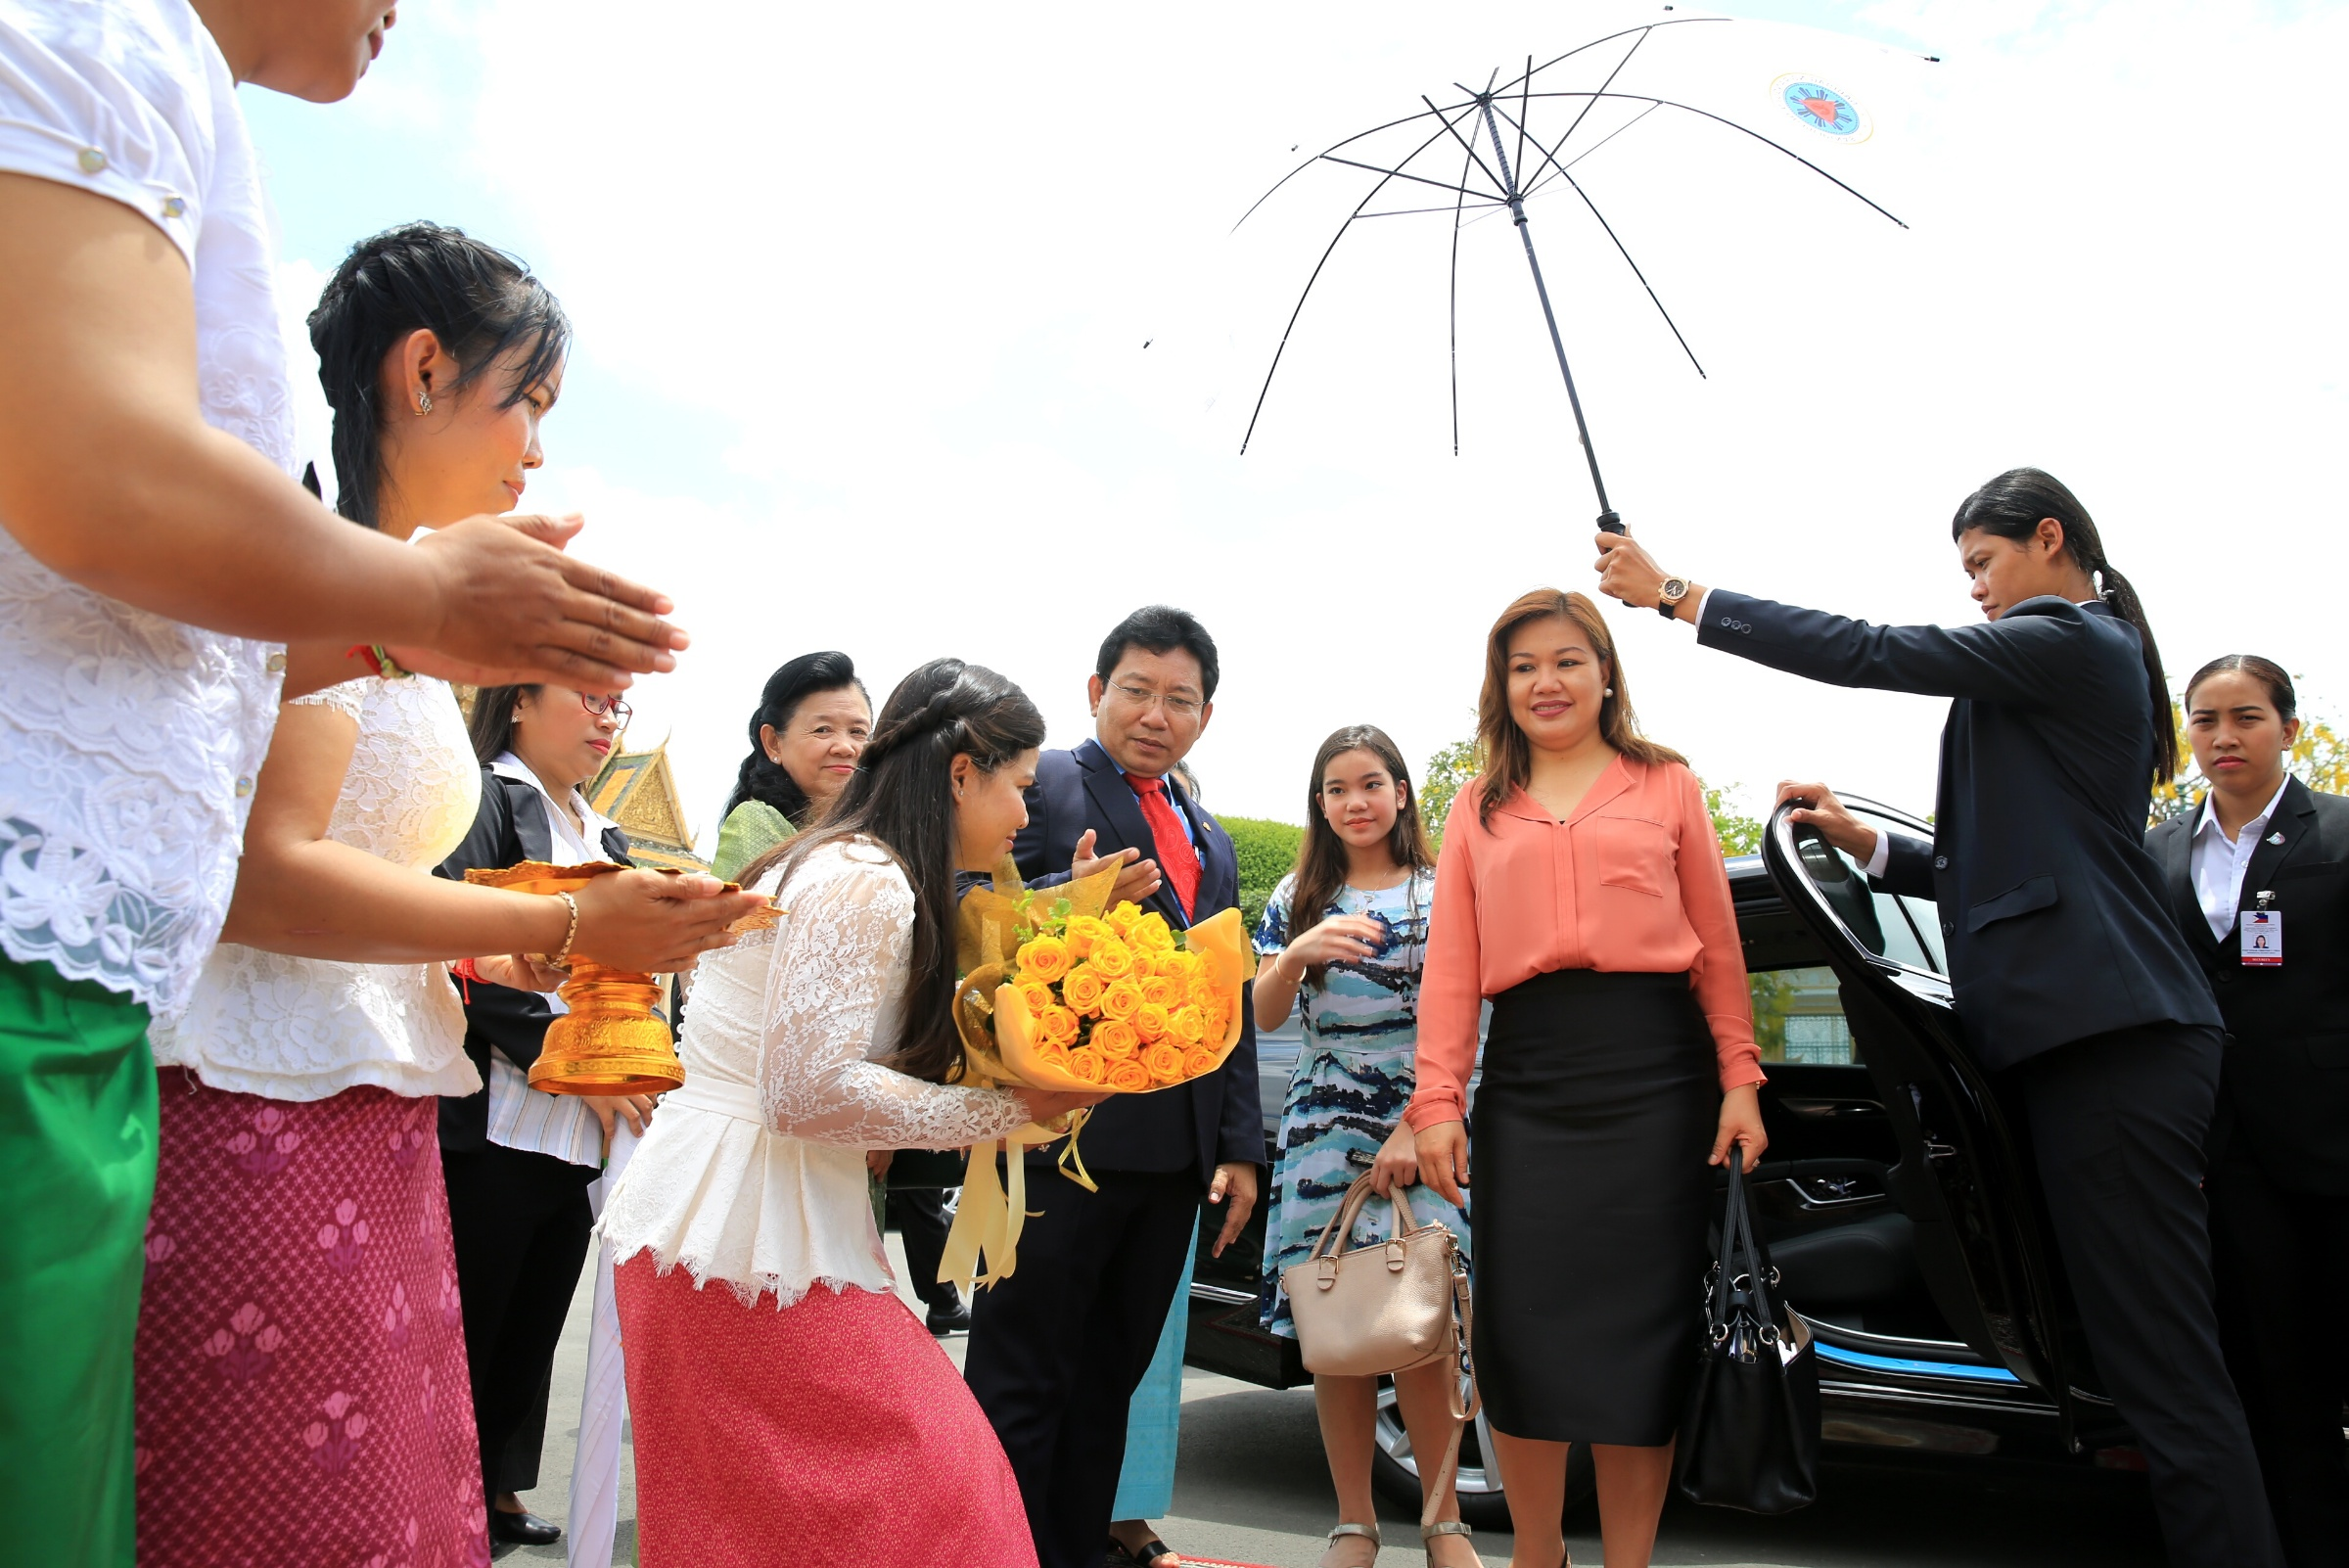 CAMBODIA TOUR. Honeylet Avanceu00f1a and daughter Kitty are welcomed as they are given a tour of the Cambodian capital. All photos by Presidential Photo